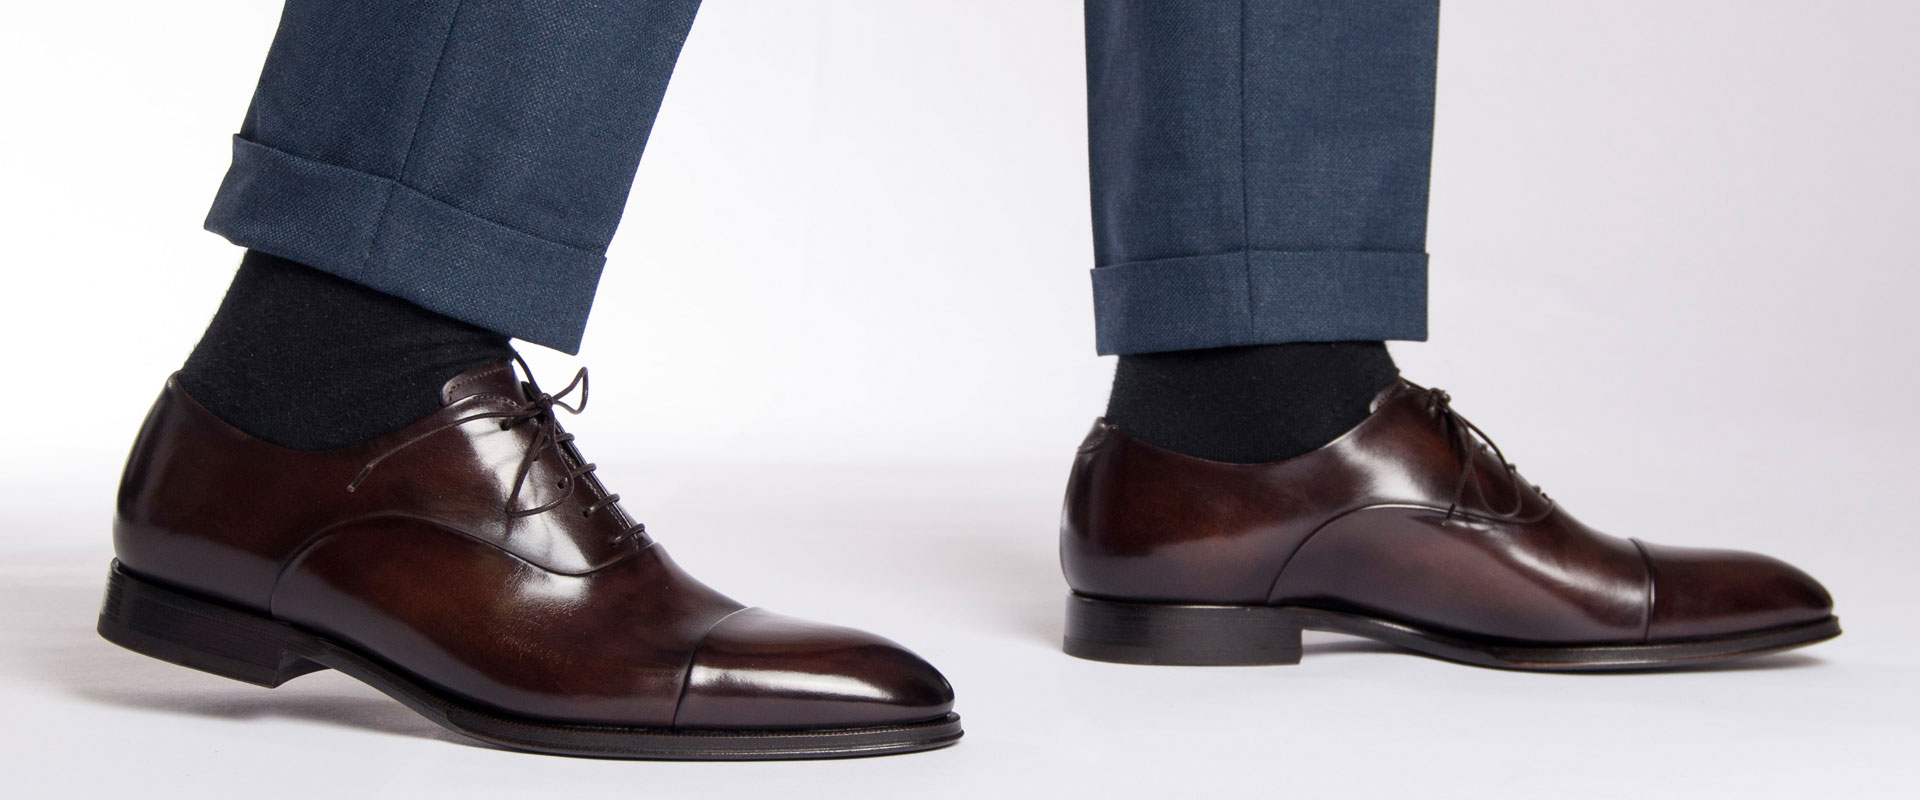 Elegant oxford shoes